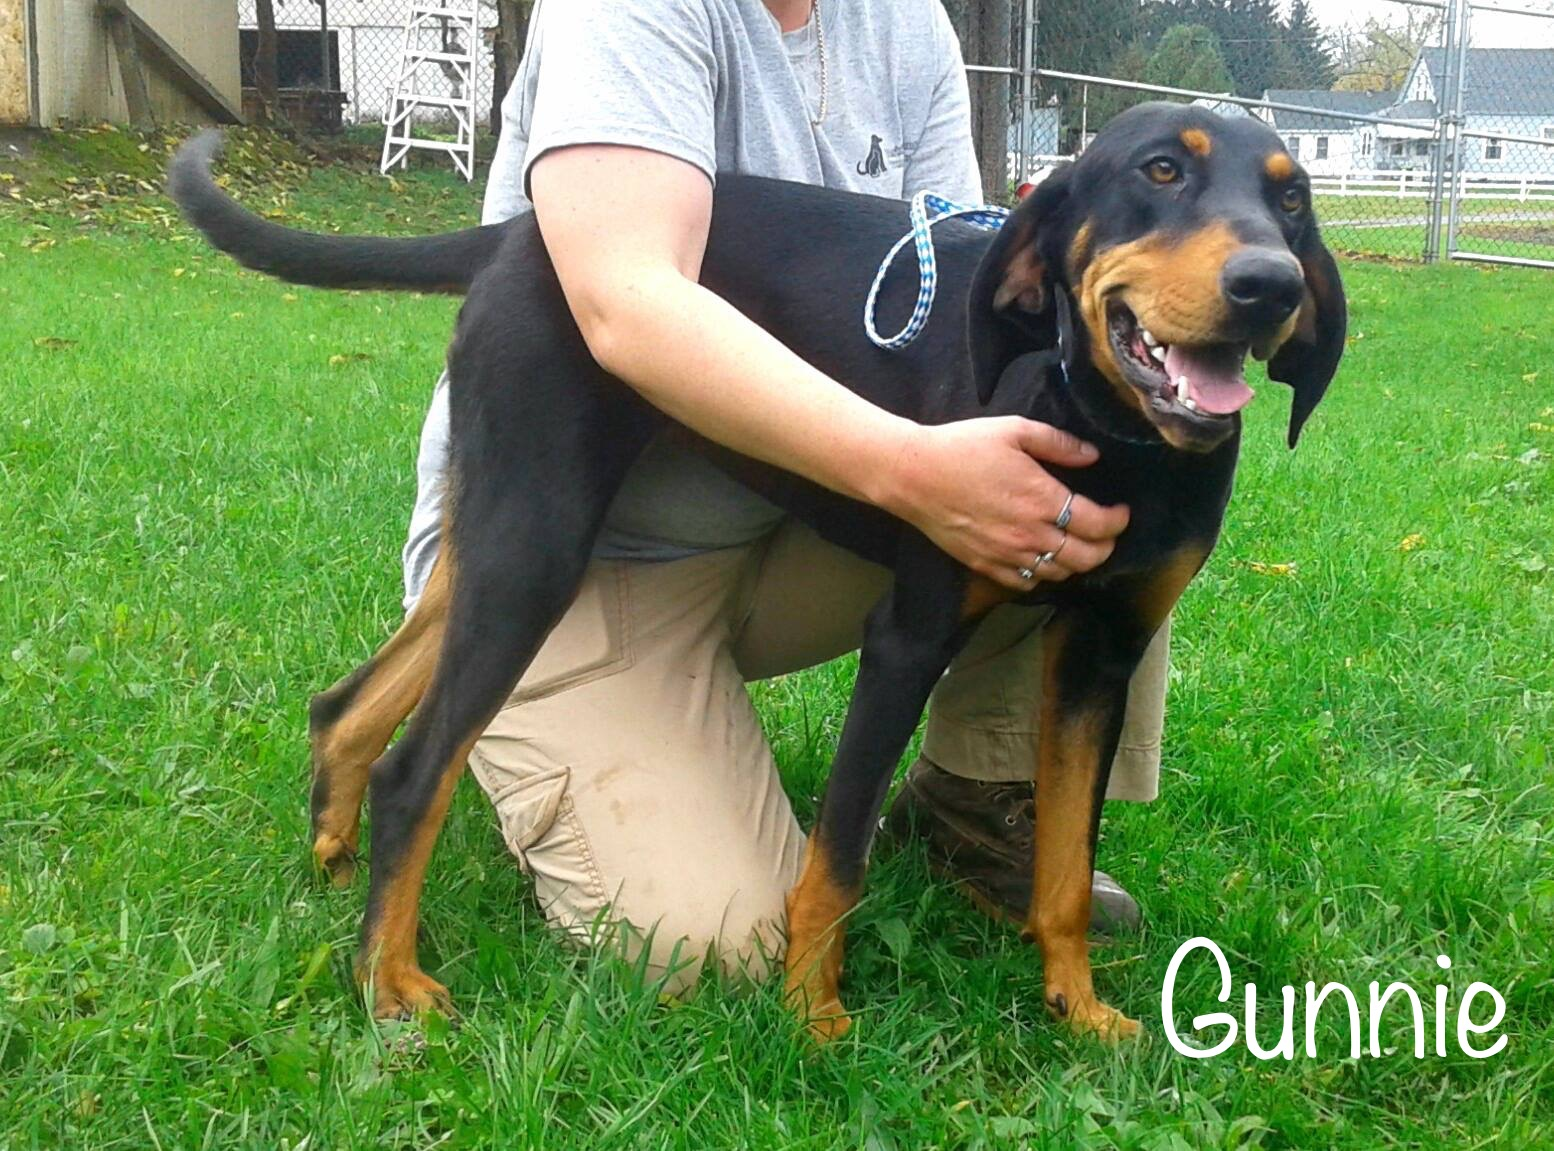 Gunnie - Coonhound